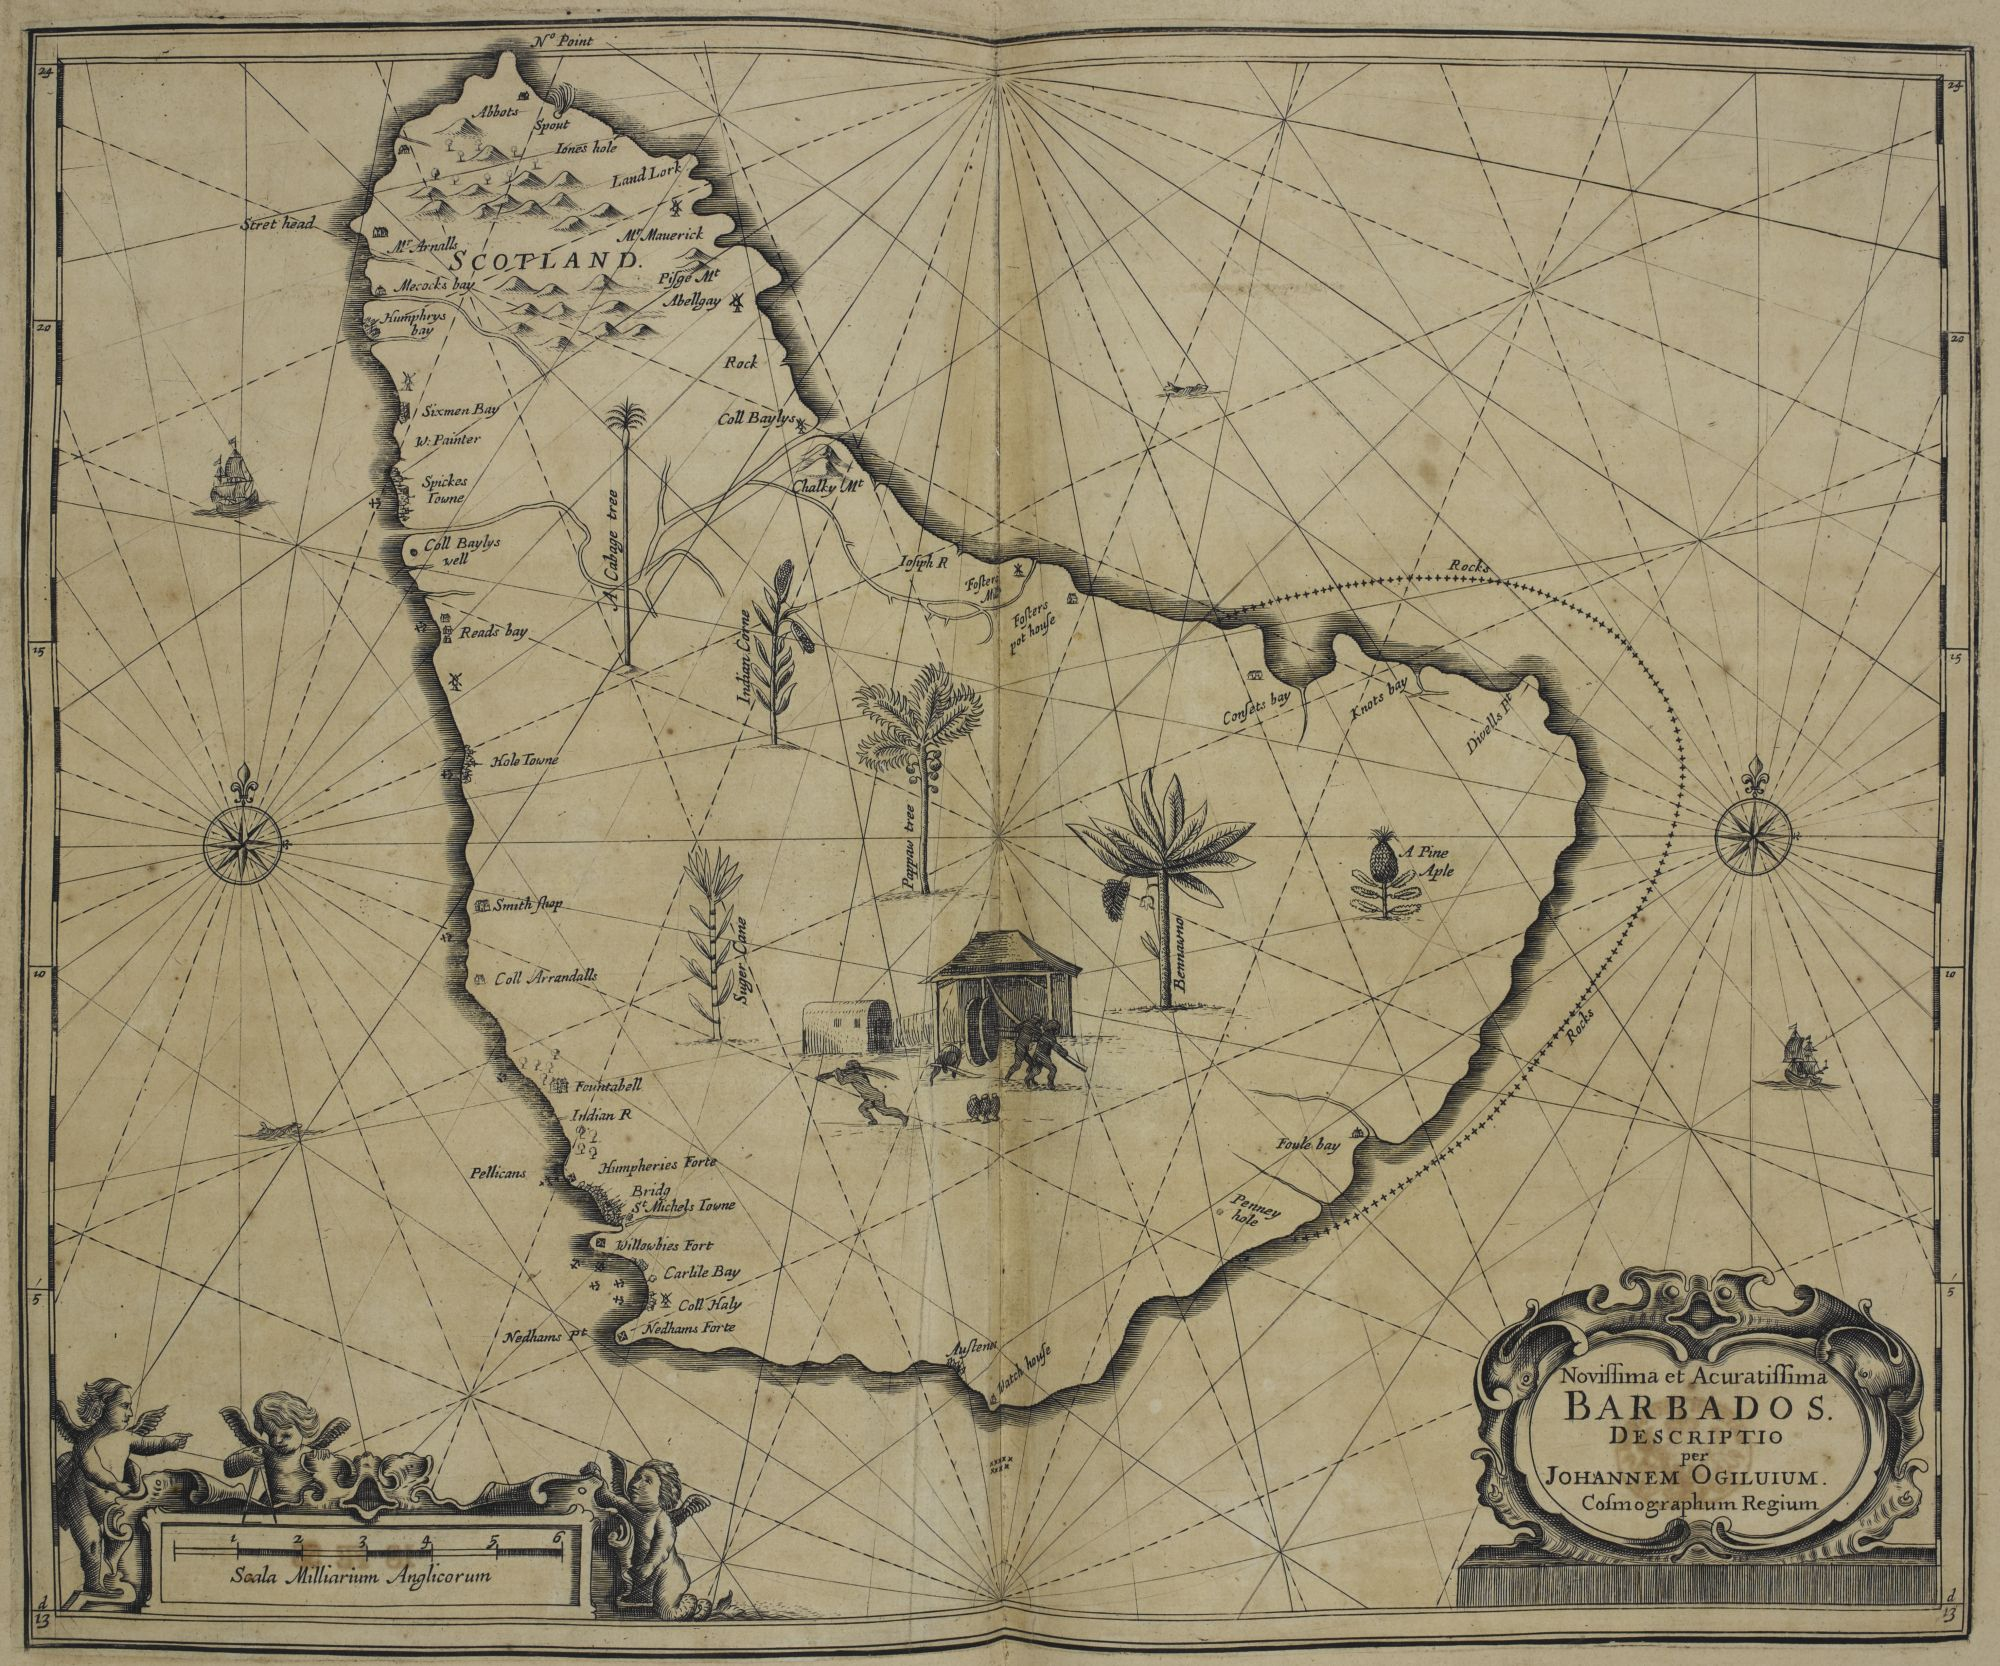 John Ogilby's map of Barbados